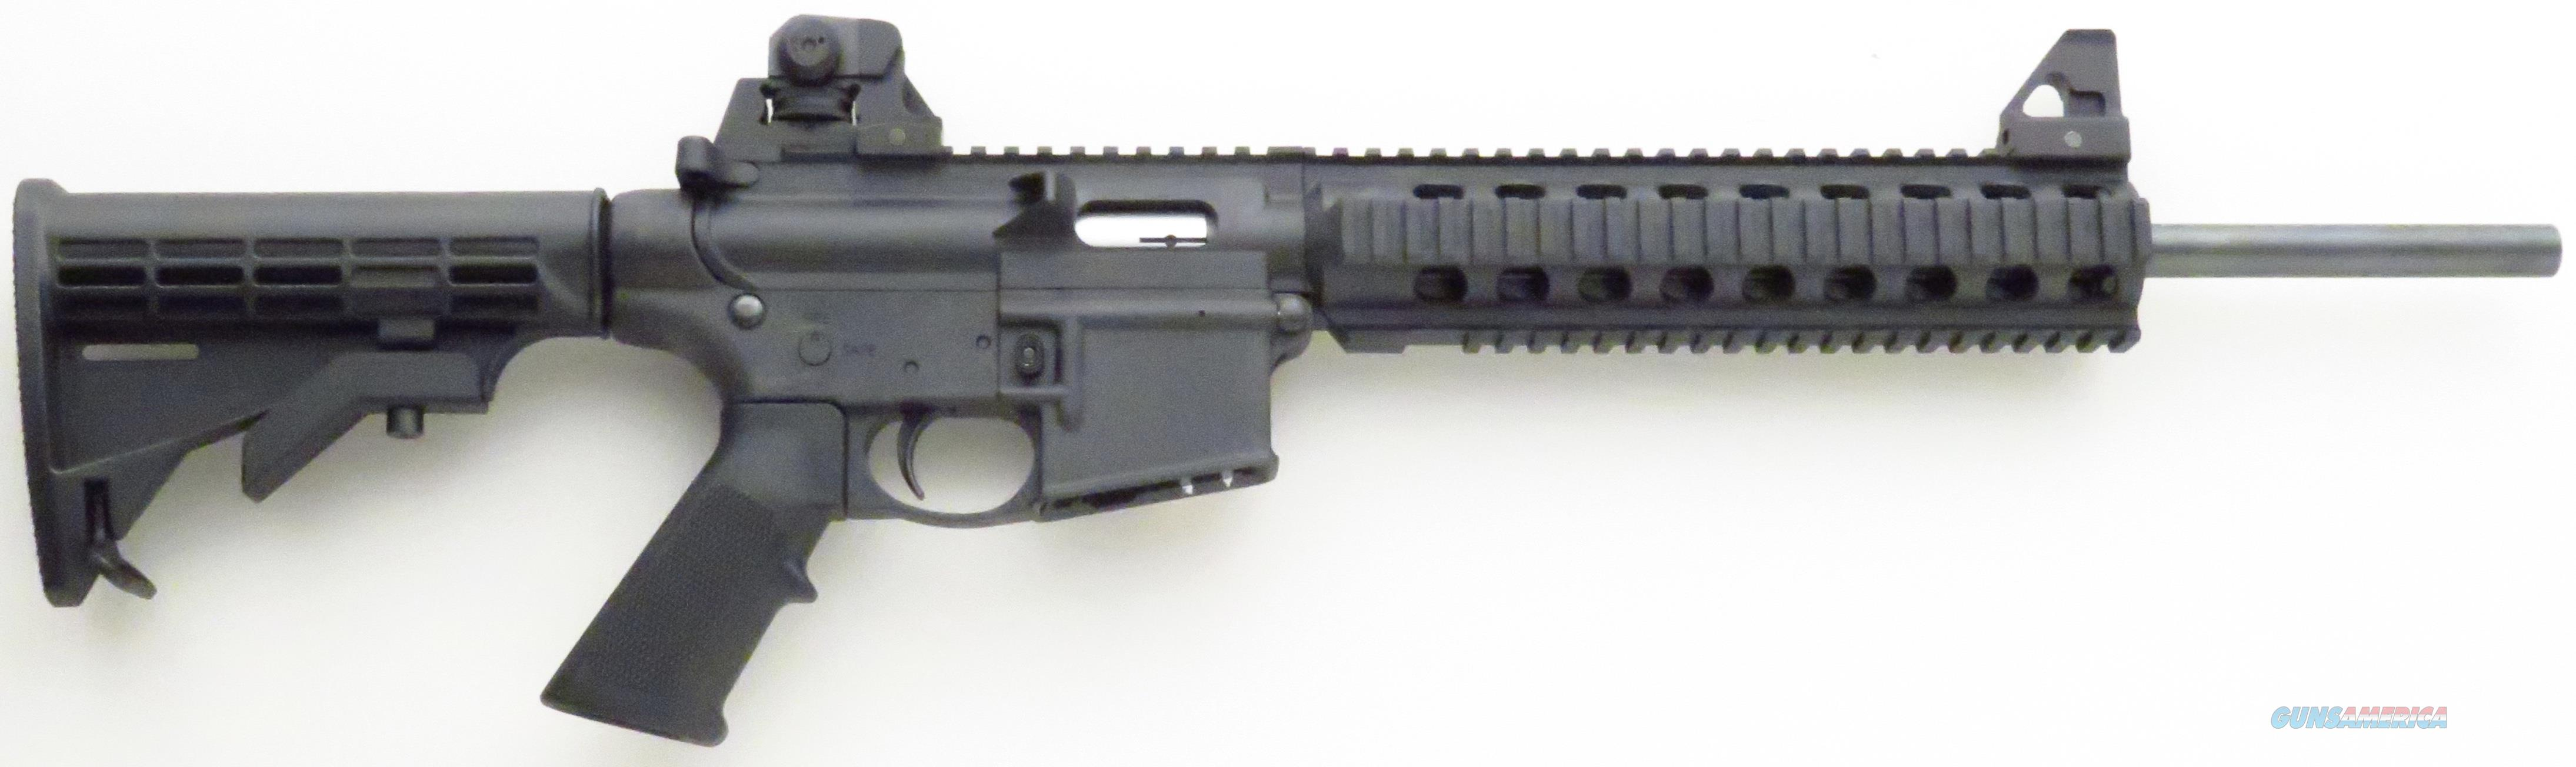 Smith & Wesson M&P-15 .22 LR, 16-inch, sights, quad rail, six-position stock  Guns > Rifles > Smith & Wesson Rifles > M&P